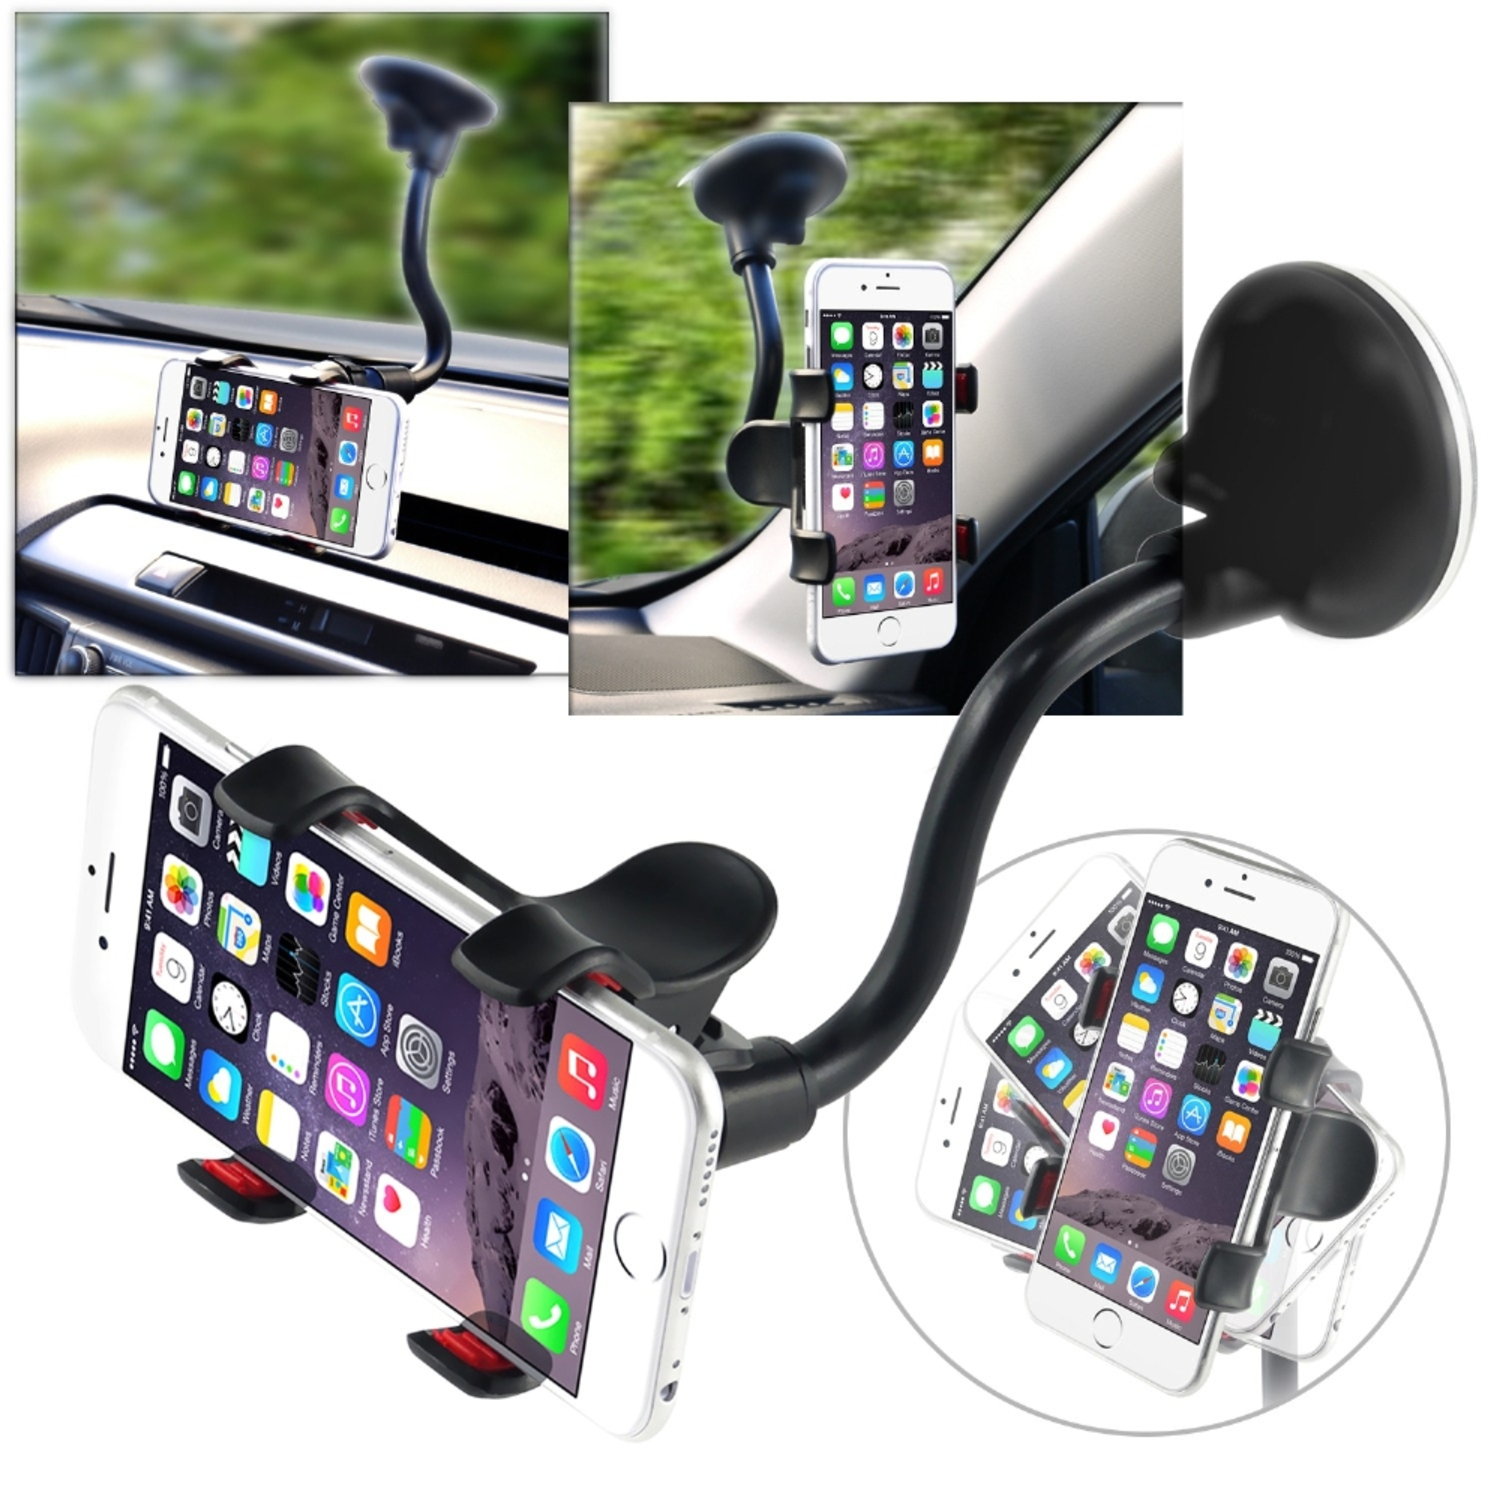 Insten Universal Car Mount Suction Phone Holder For Cell Phone Smartphone iPhone 6 6S Plus SE iPod /Samsung Note 5 4 3 2 Galaxy S7 S6 Edge S5 S4 S3 Core Grand Prame / LG G Stylo Leon Tribute G5 K7 V10